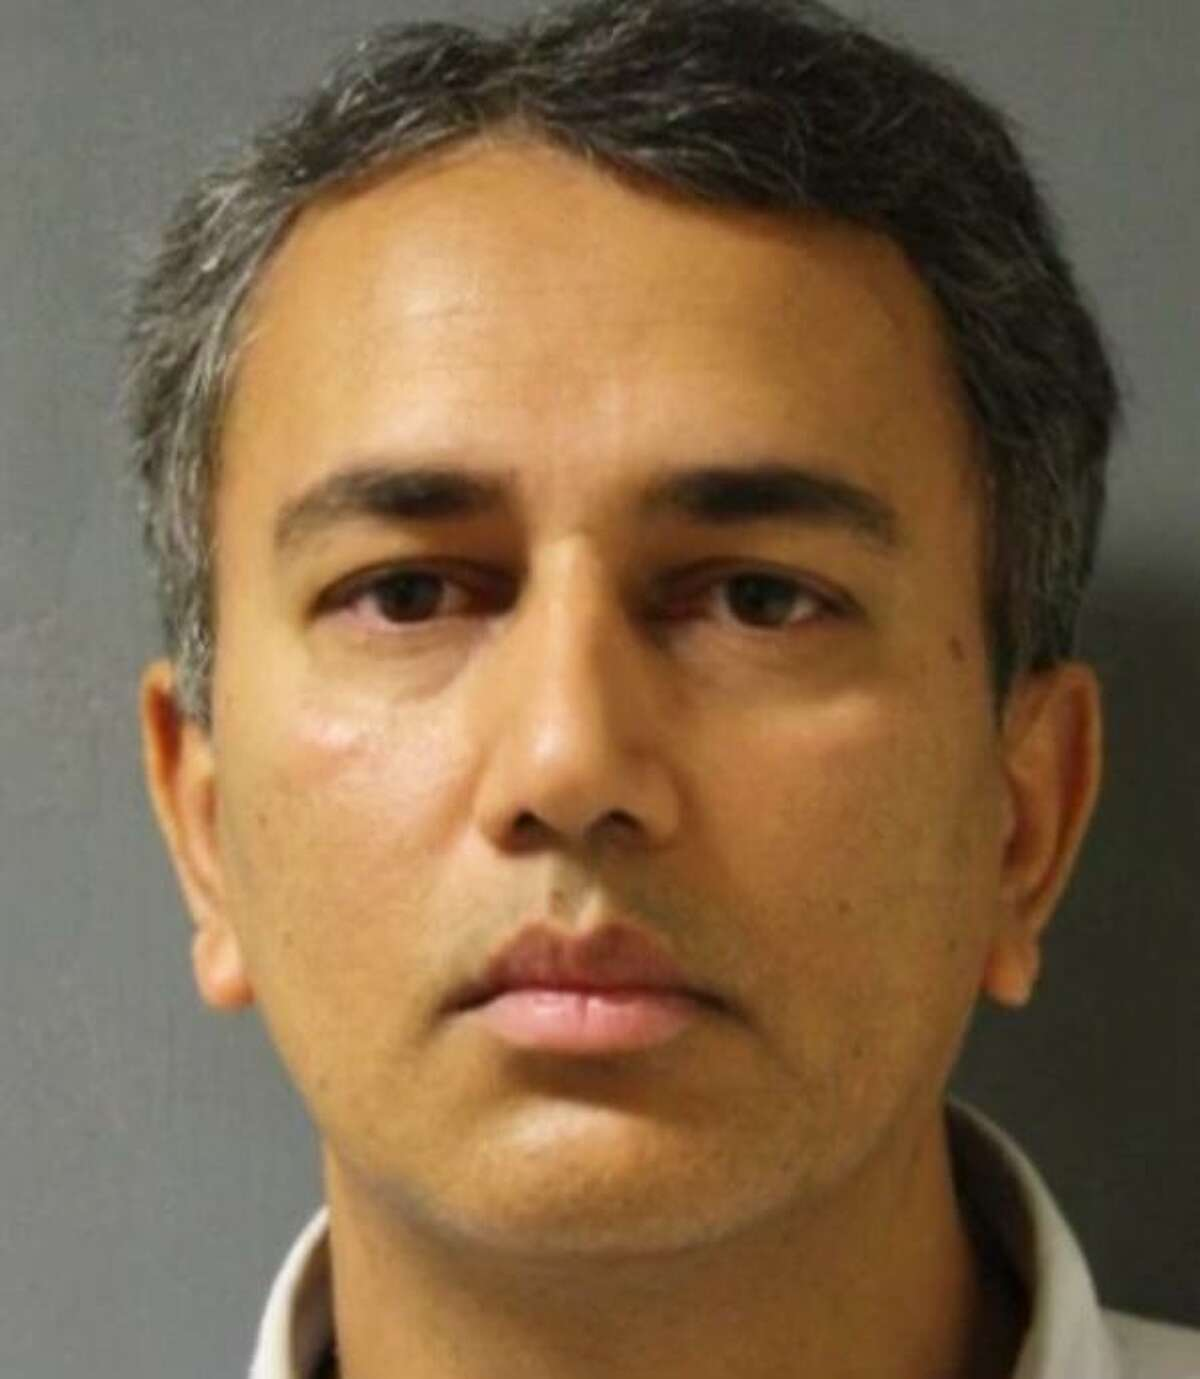 Dr. Shafeeq Sheikh is a former Ben Taub and Methodist doctor accused of raping a patient in 2013.